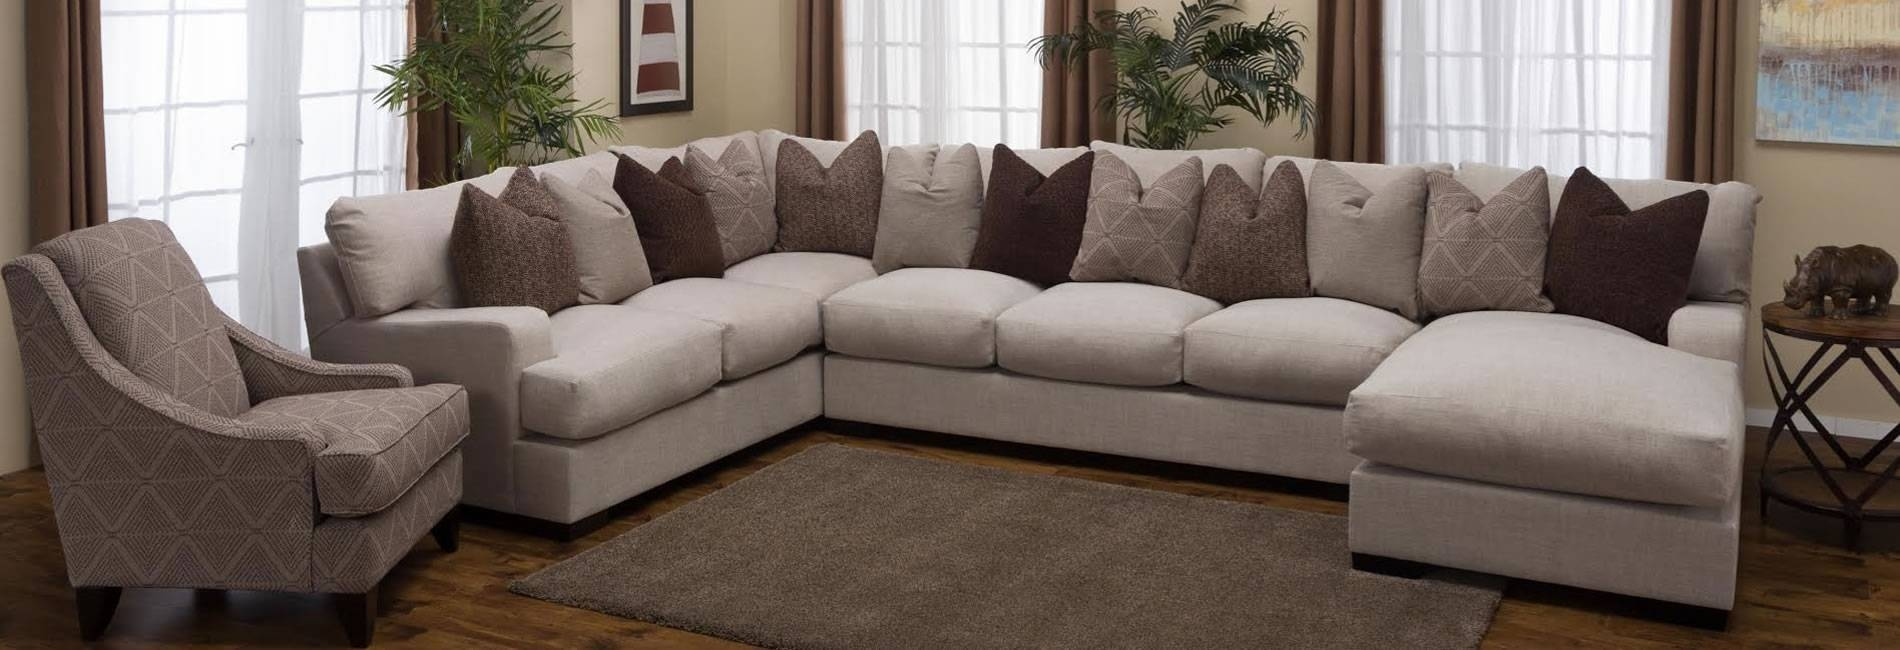 Sofas Center : Dark Grey Sectional Couches Homelegance Keamey with Huge Sofas (Image 25 of 30)